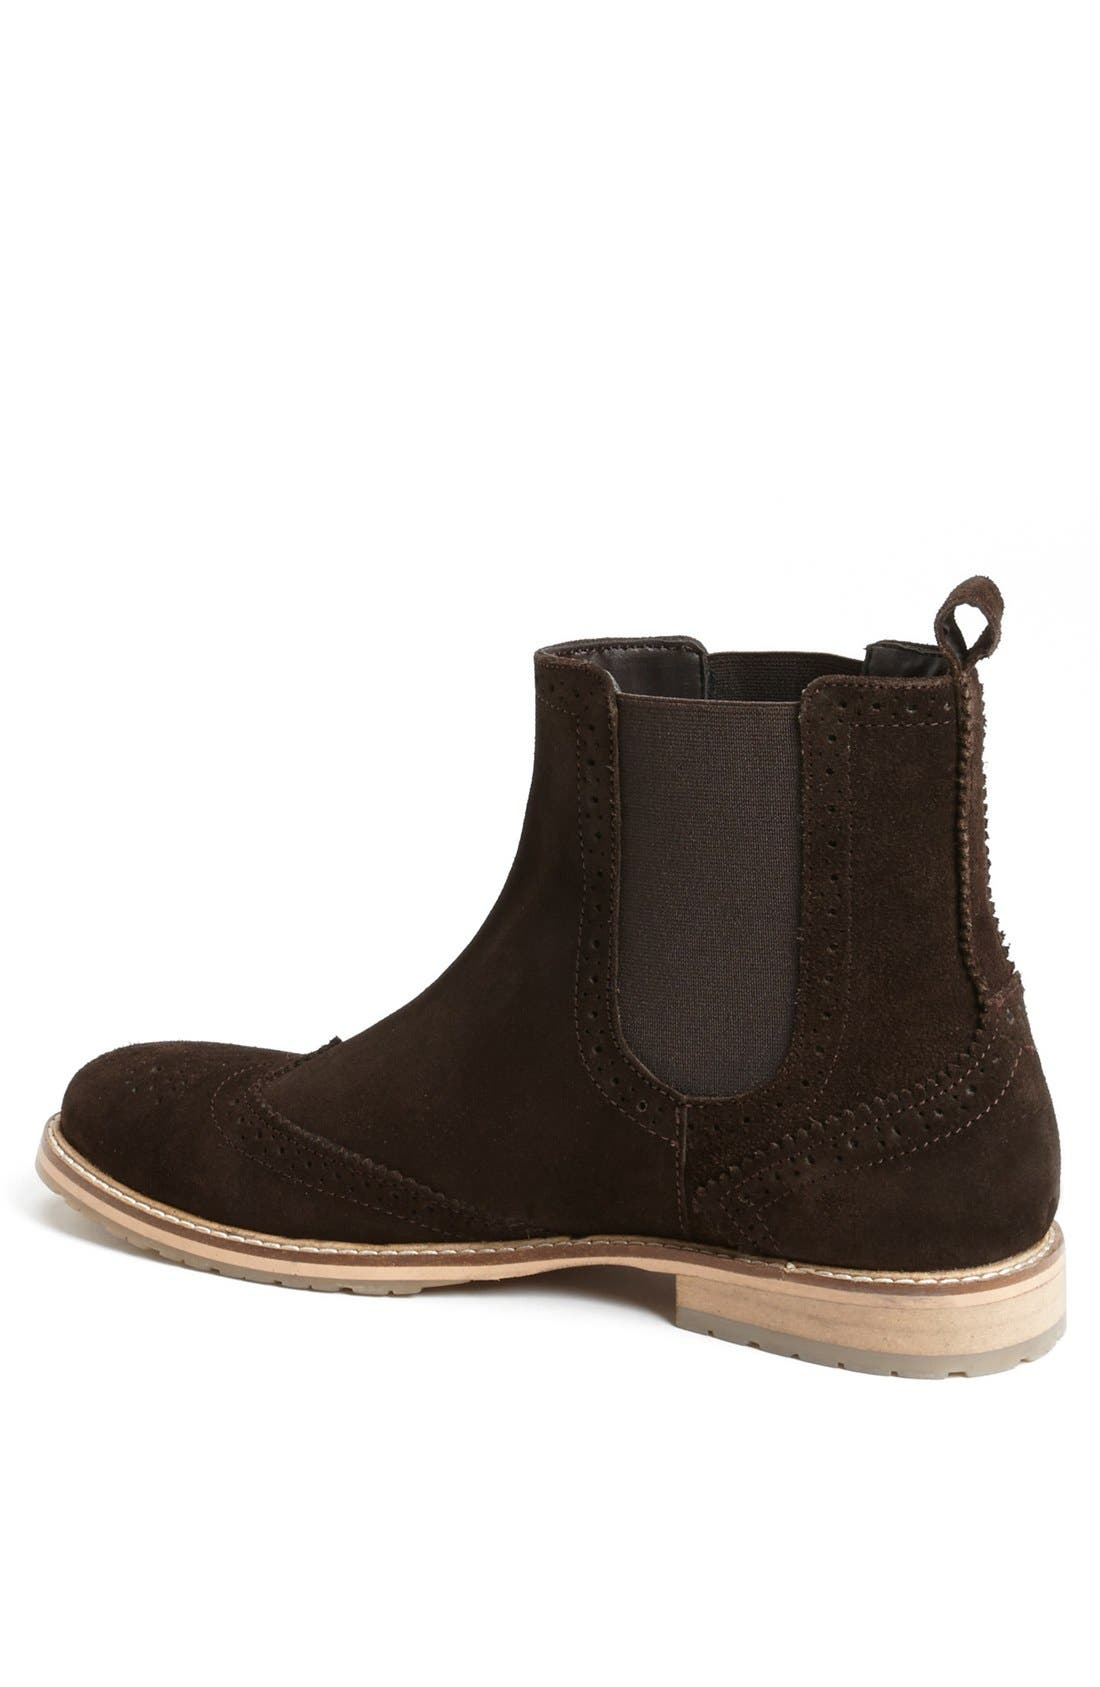 Alternate Image 2  - Ben Sherman 'Bruno' Wingtip Chelsea Boot (Men)